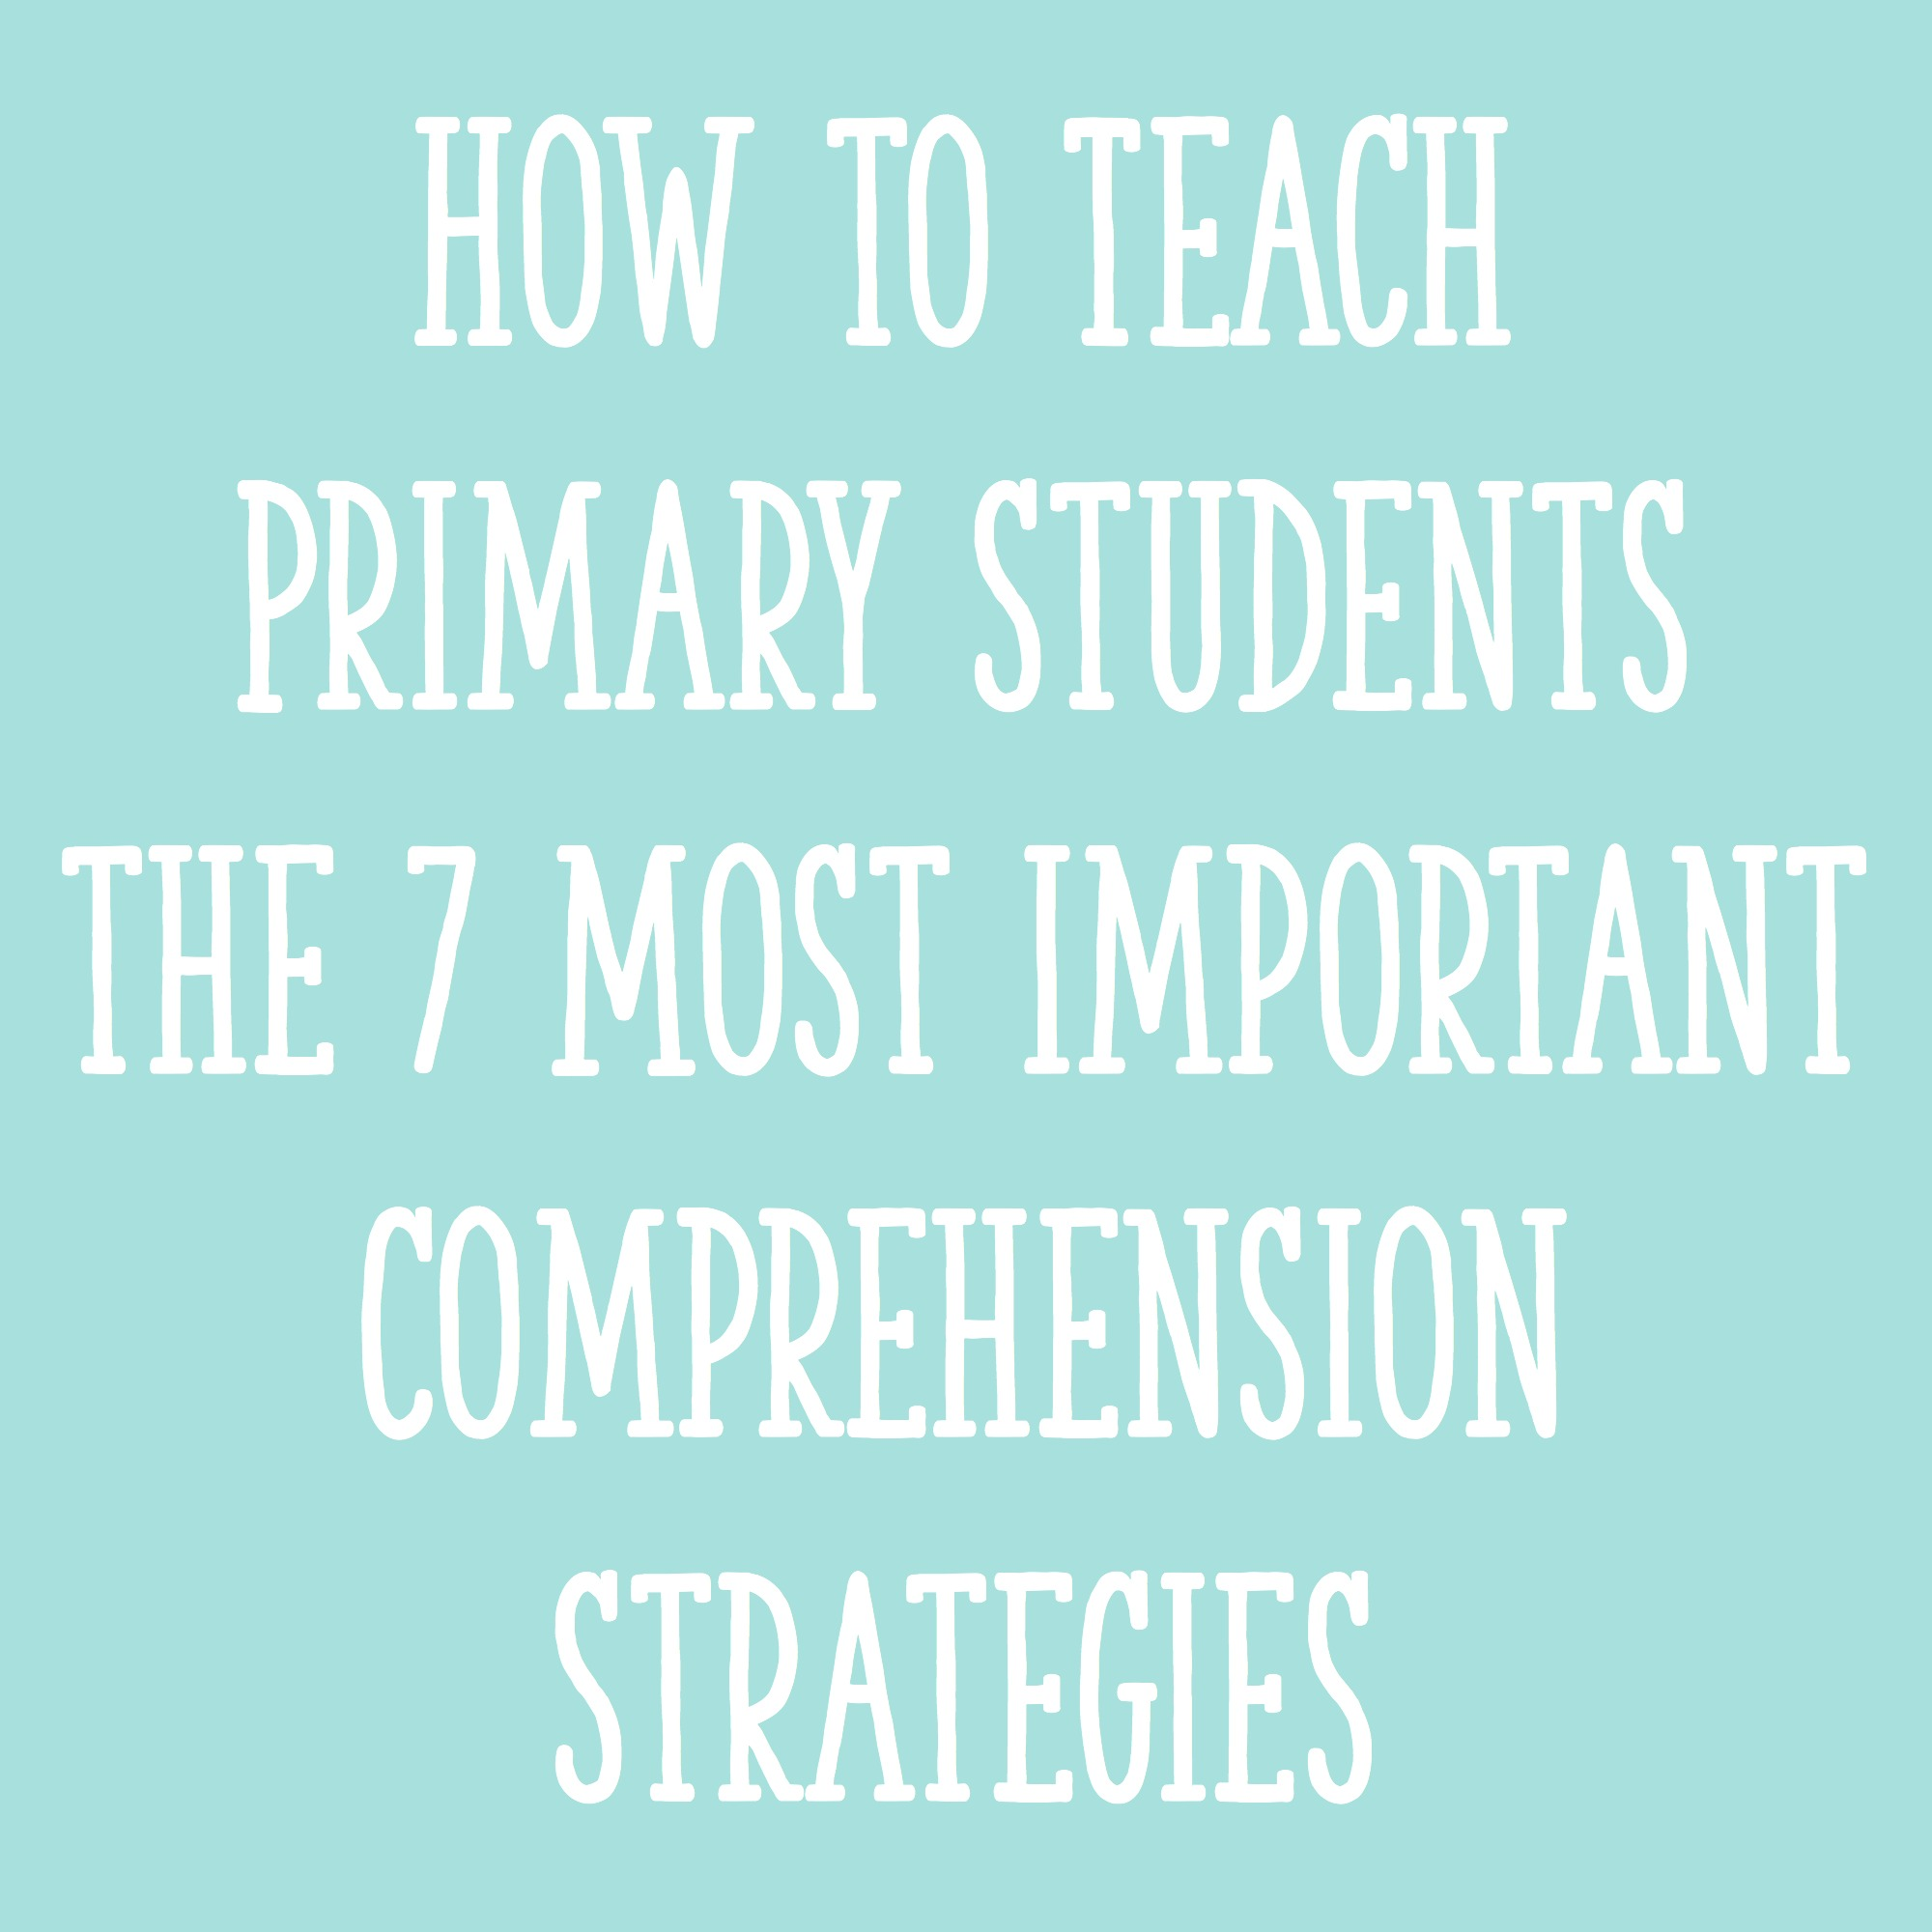 How To Teach Primary Students The 7 Most Important Comprehension Strategies